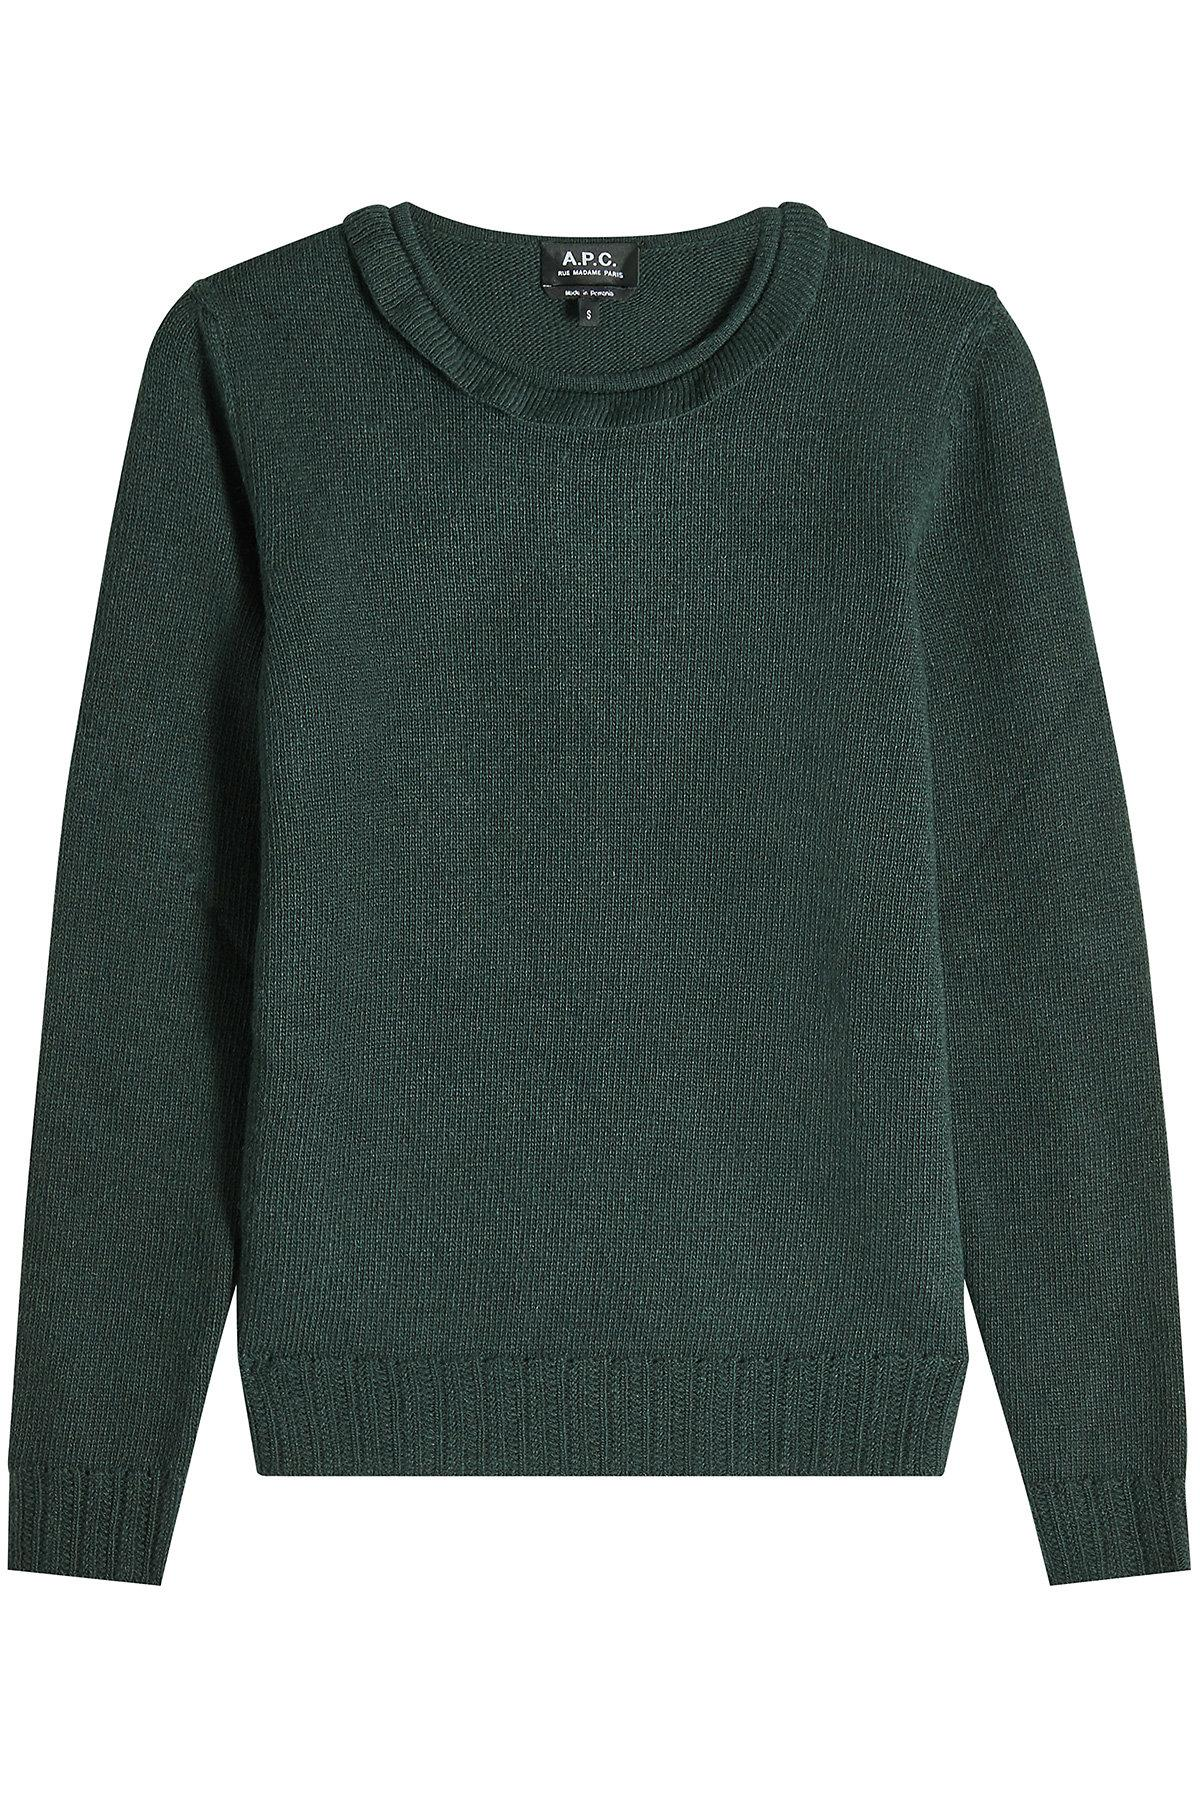 A.P.C. Pullover With Wool, Cashmere And Superkid Mohair In Green